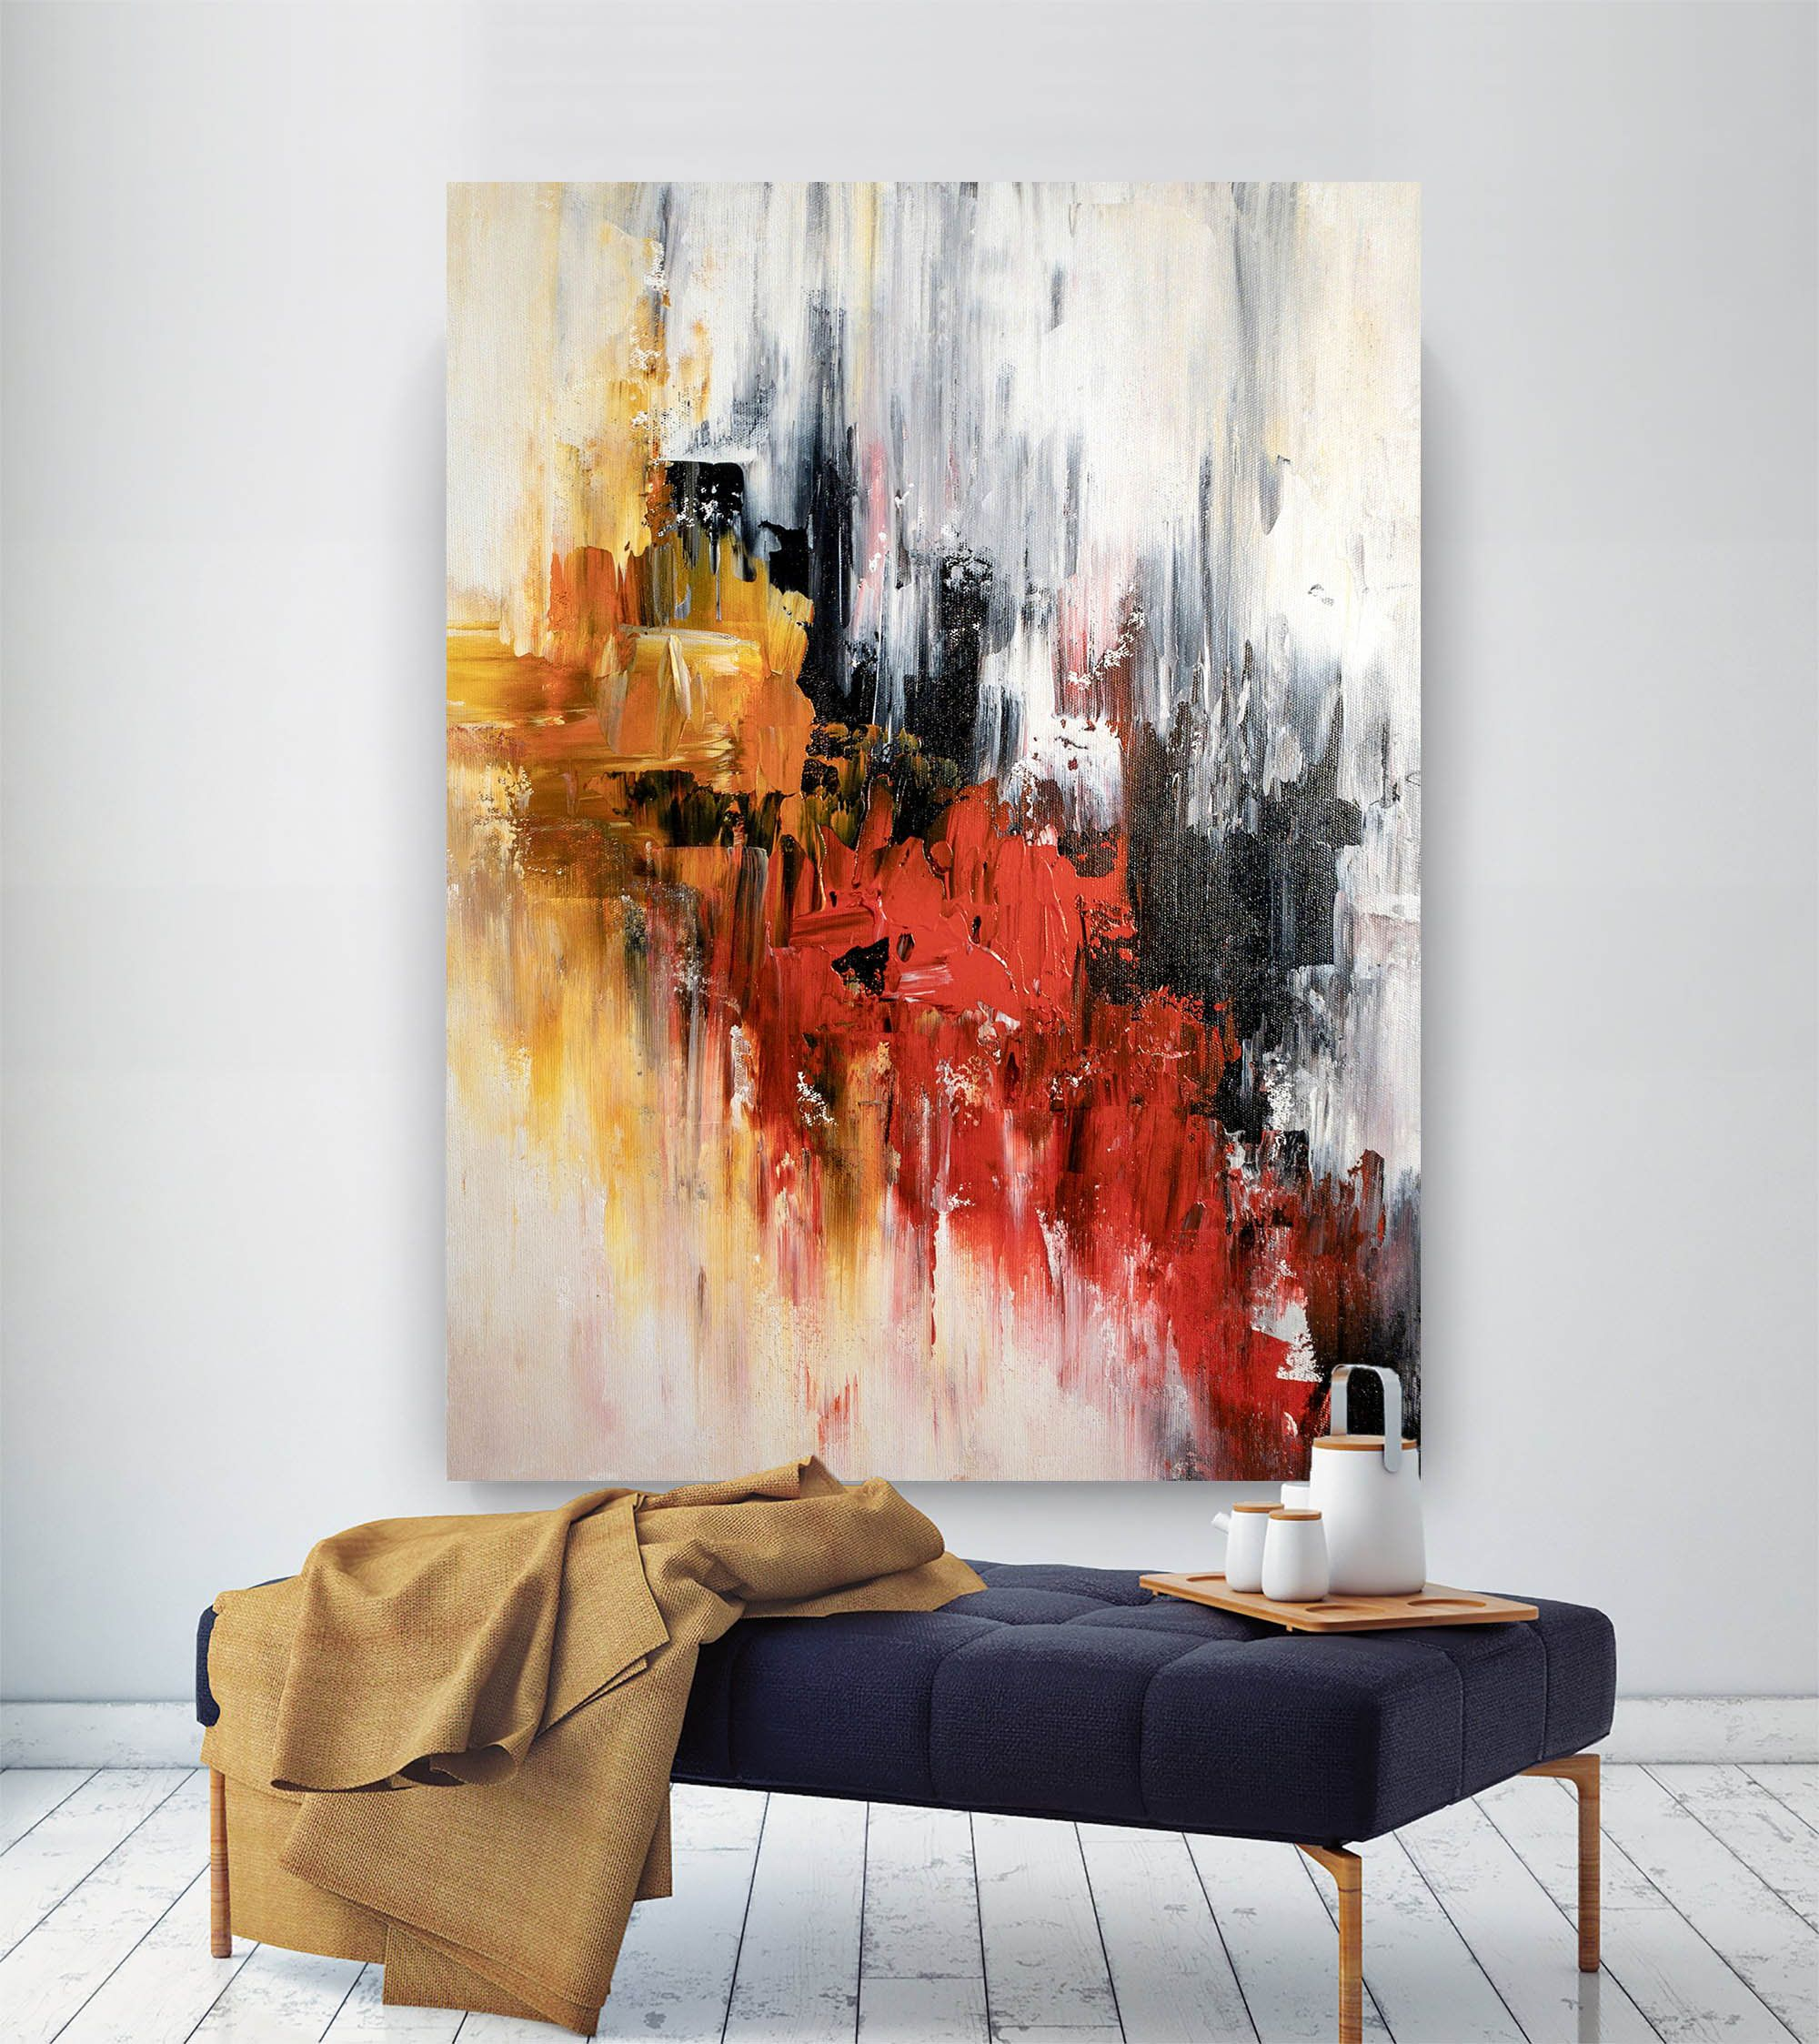 Photo of Large Abstract Painting,Modern abstract painting,bright painting art,painting on canvas,abstract painting,abstract texture art BNc001